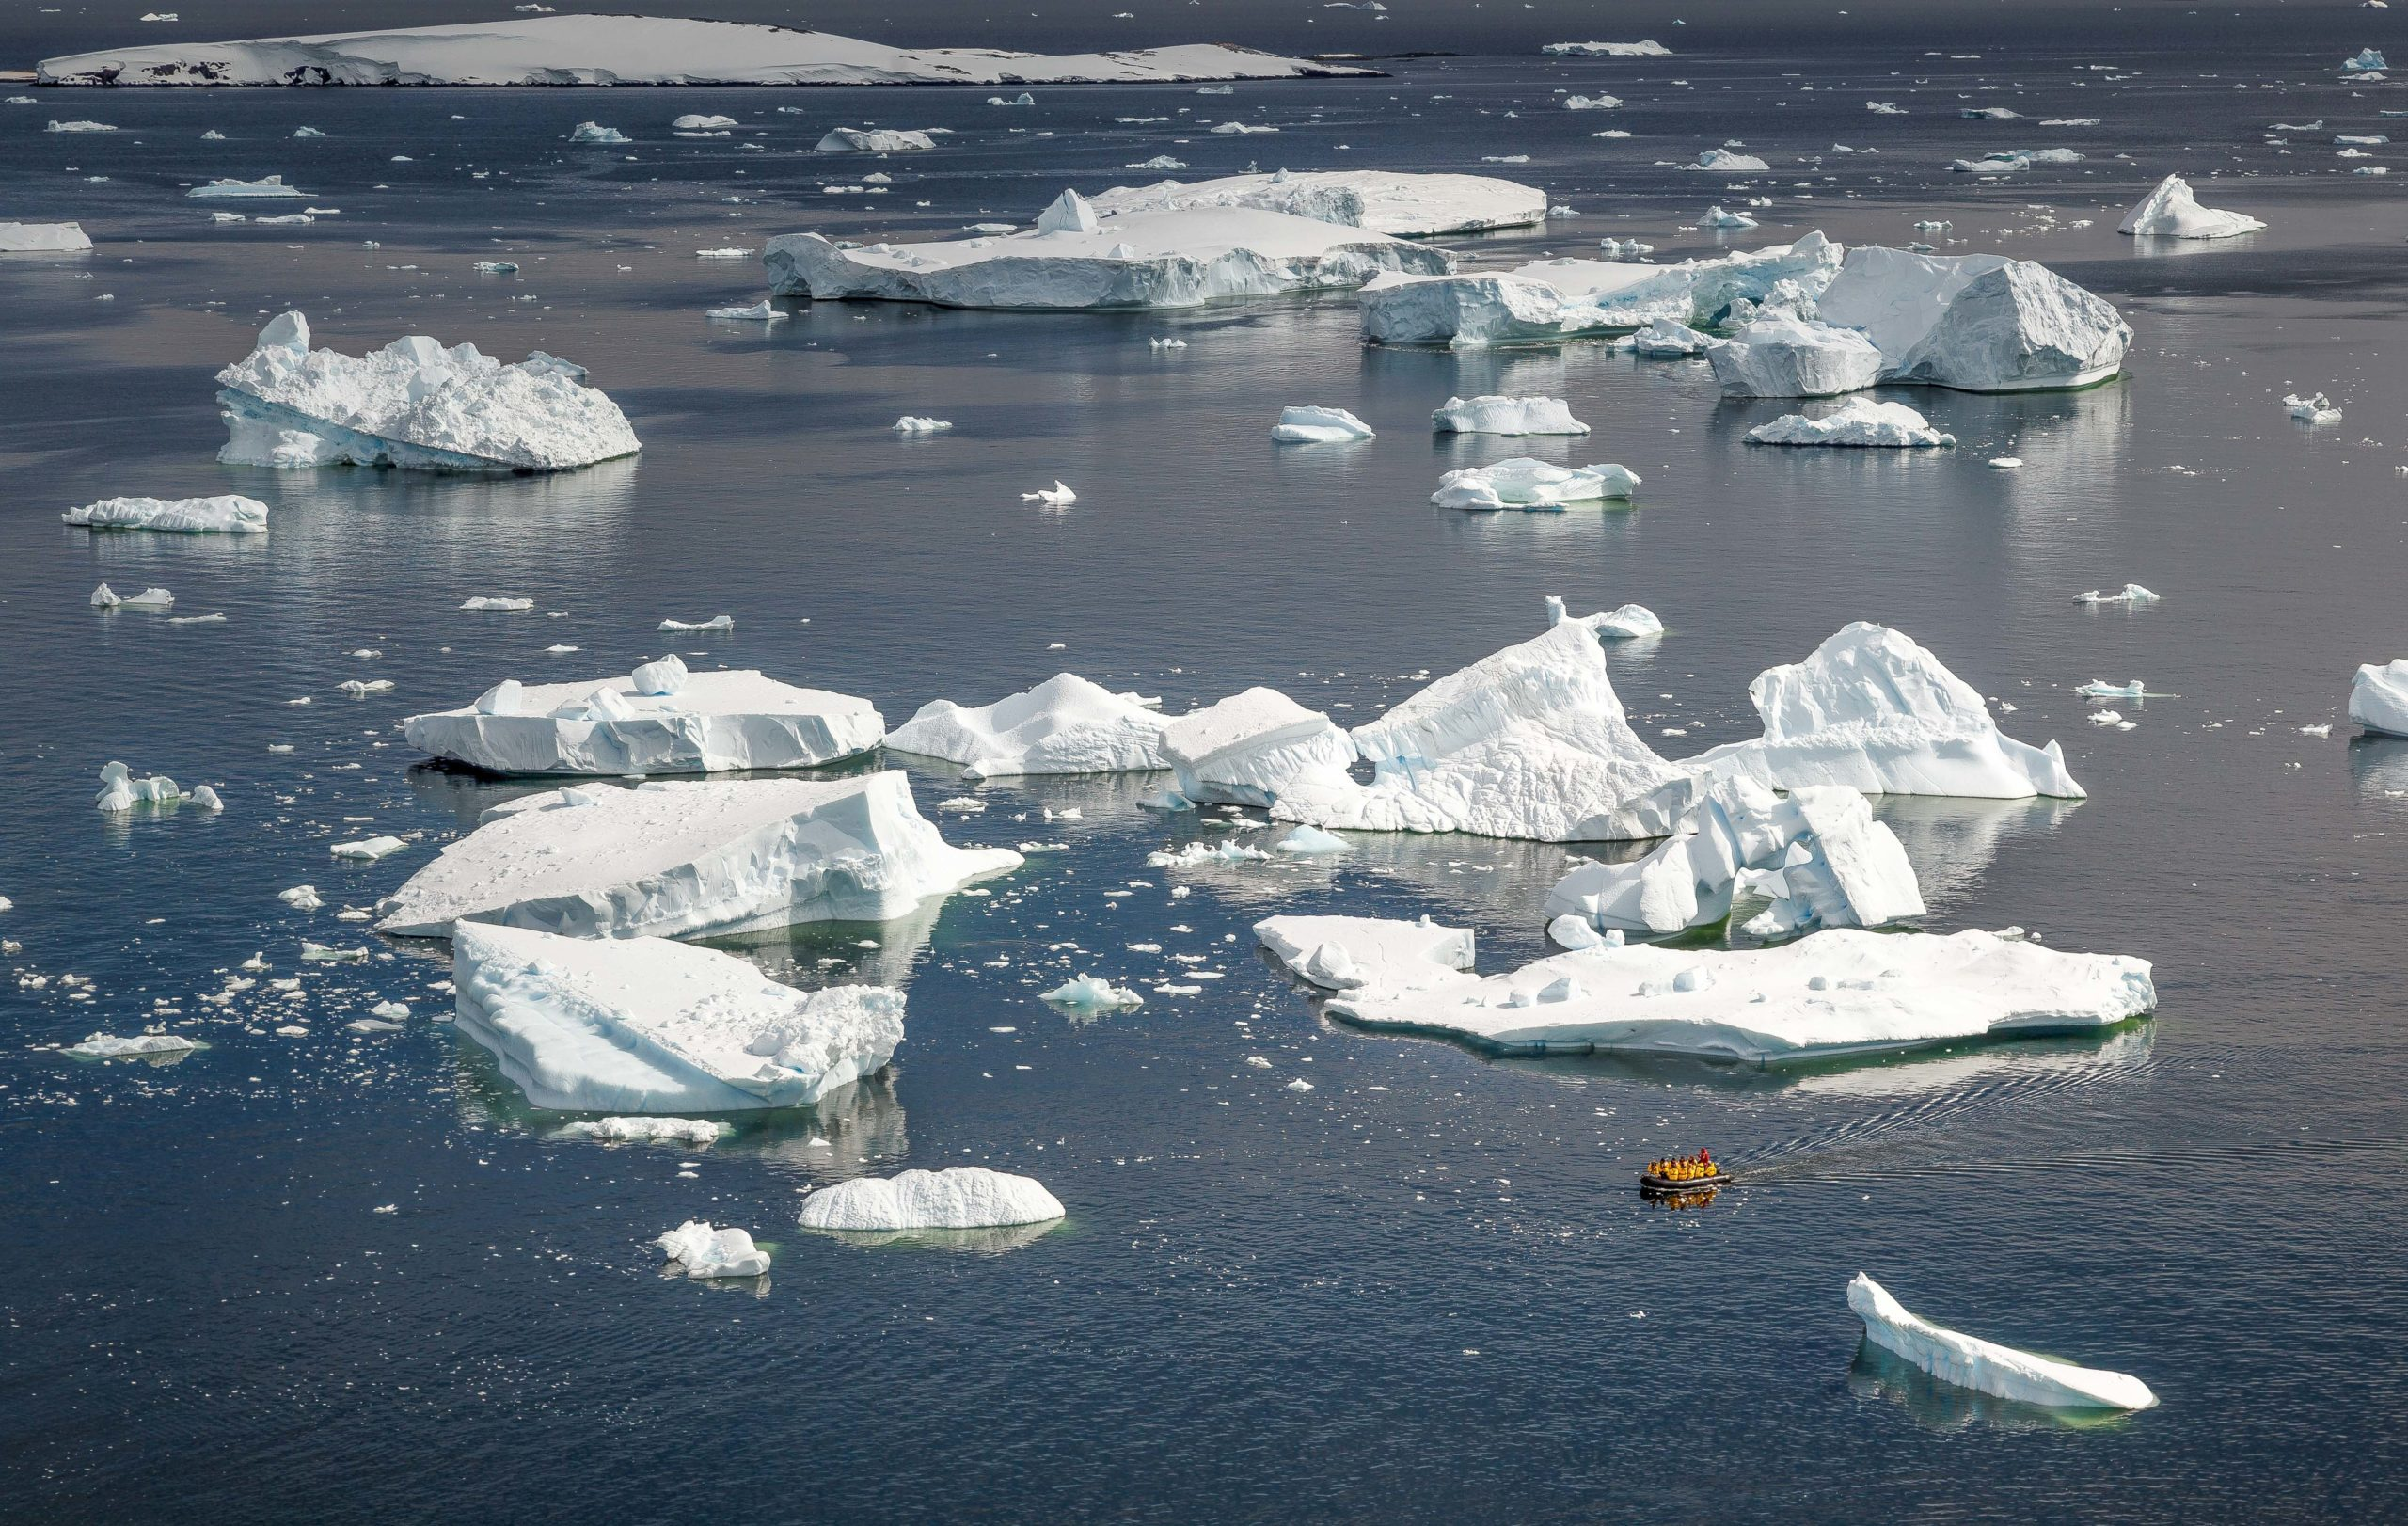 zodiac boat dwarfed by the size of the icebergs floating in the Antarctic waters